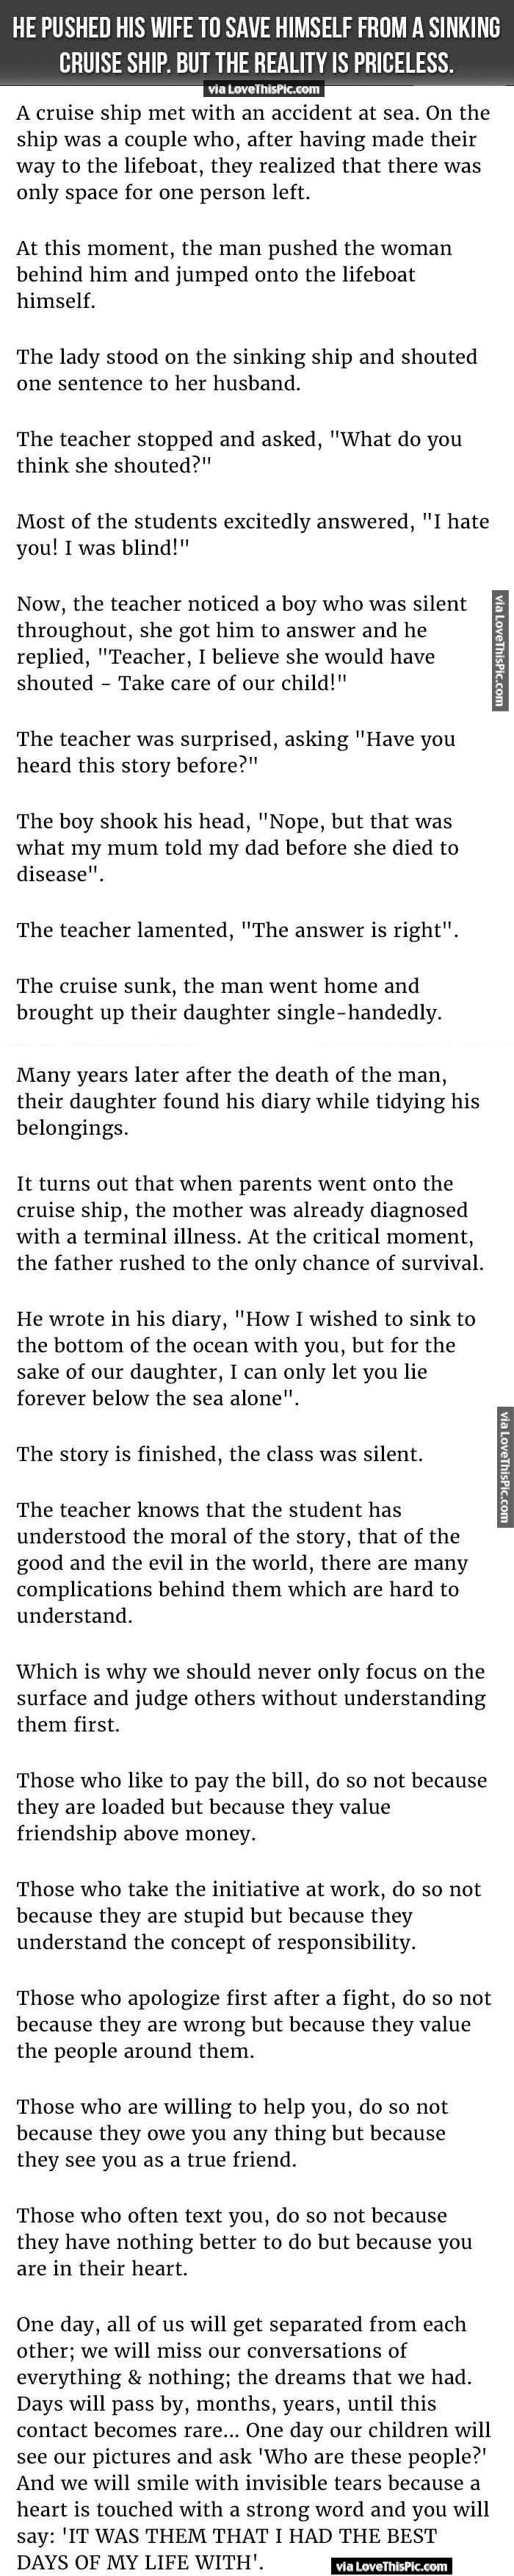 17 best ideas about sad stories touching stories a man pushes his wife out of the way to get in a lifeboat while the